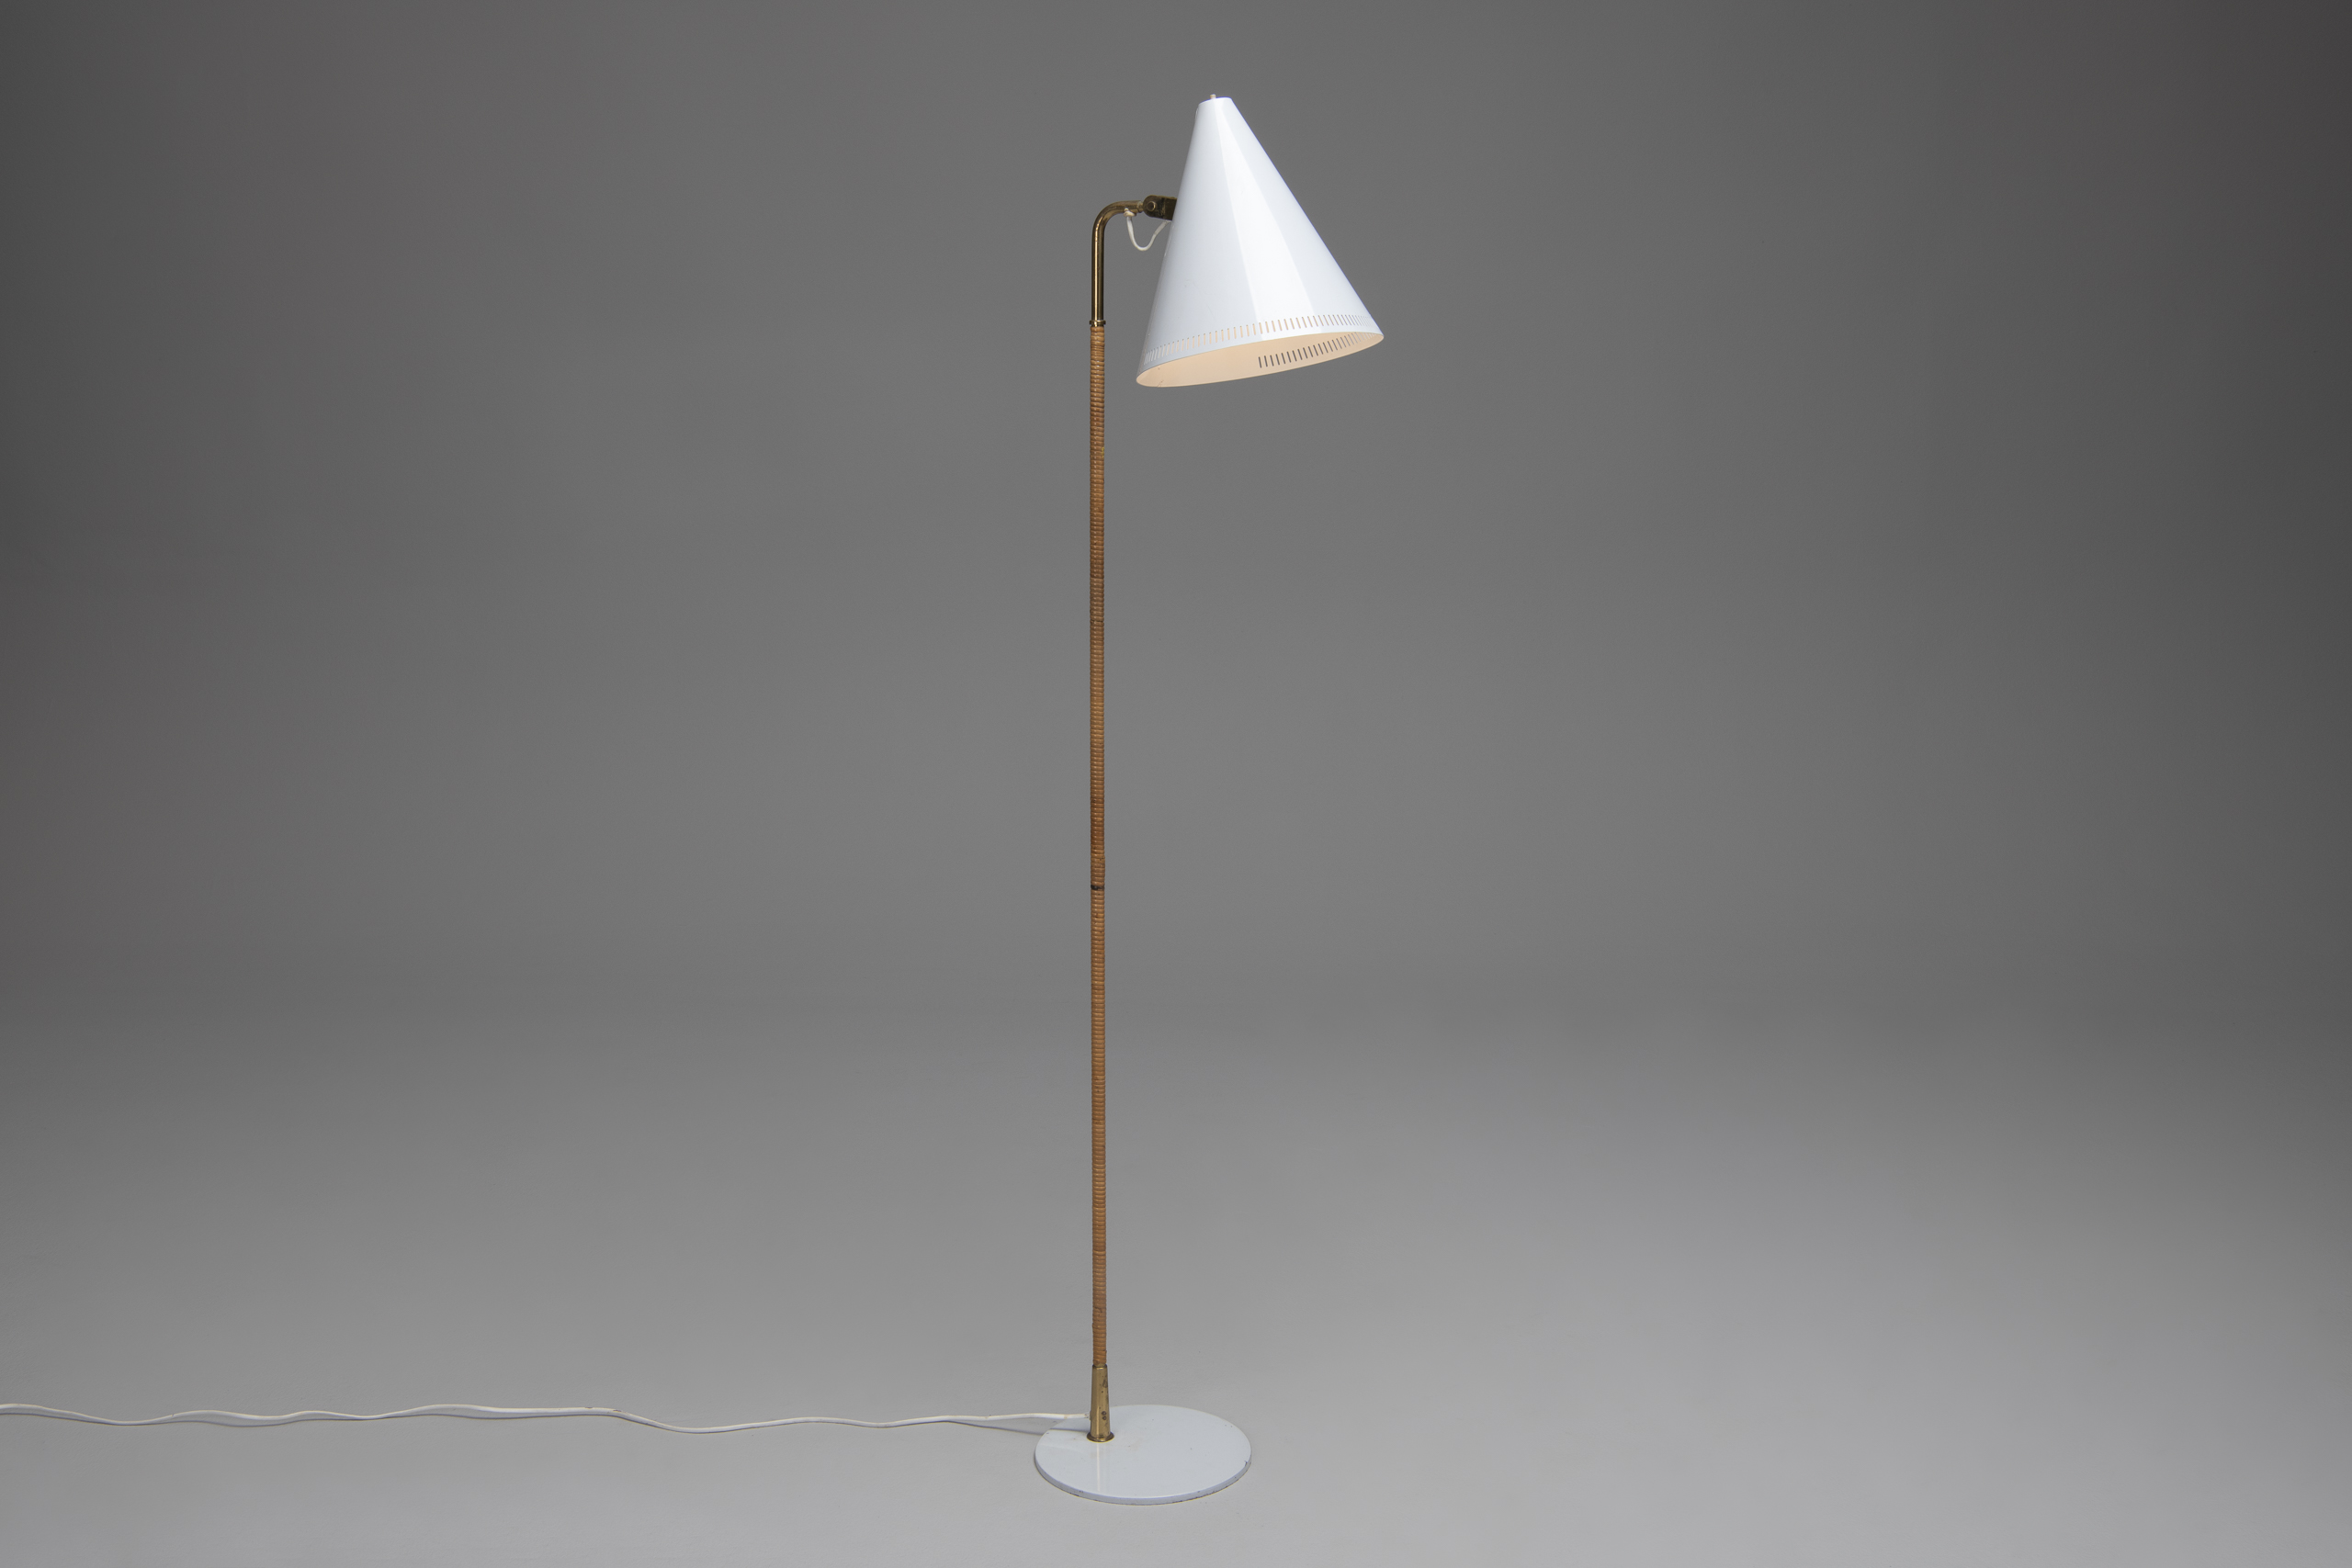 Floor lamp, Model No. K10-10